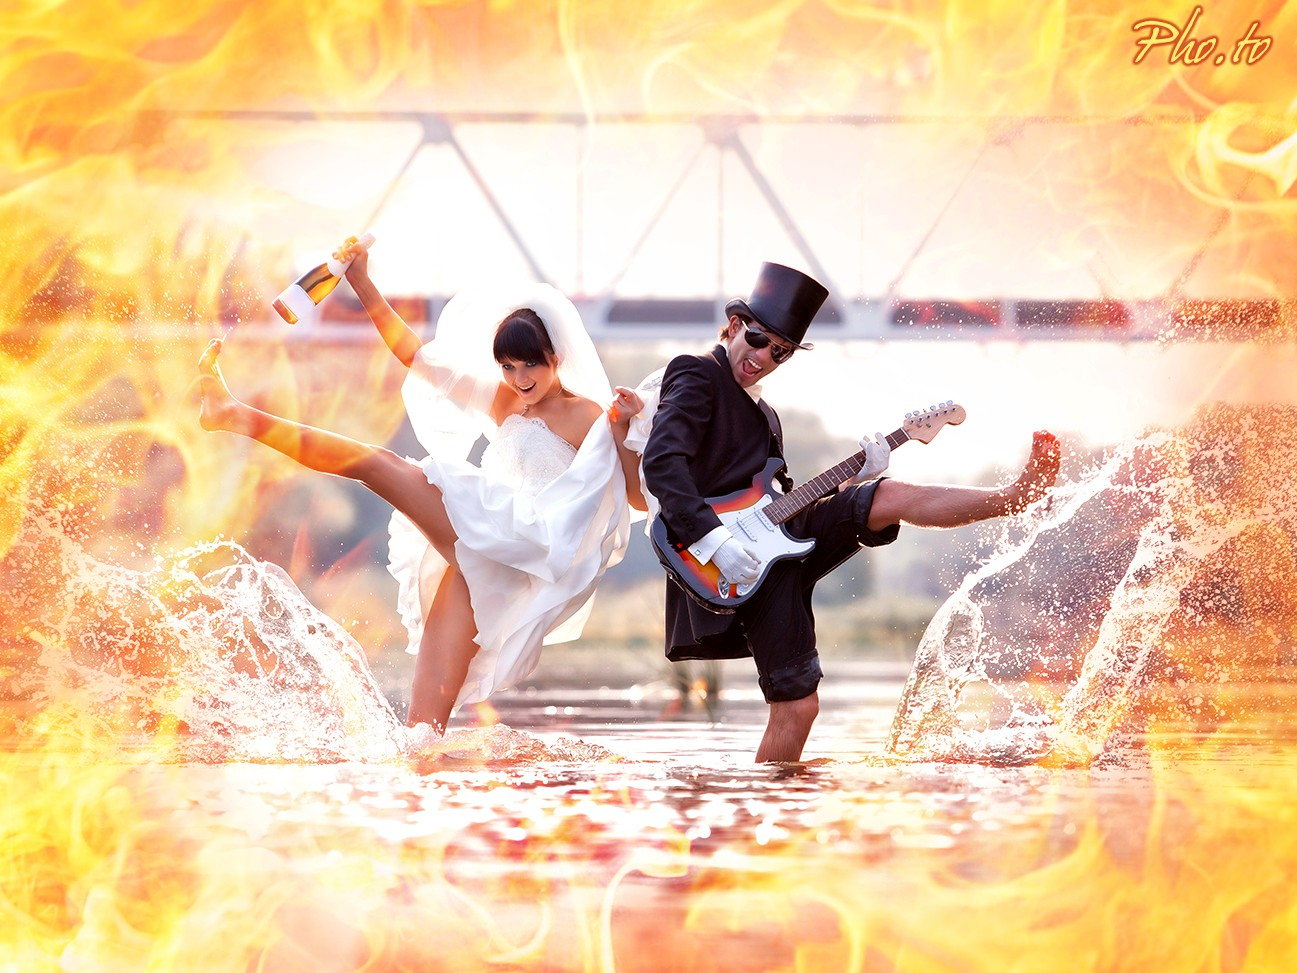 Fire overlay is applied to the funny image of happy newlyweds